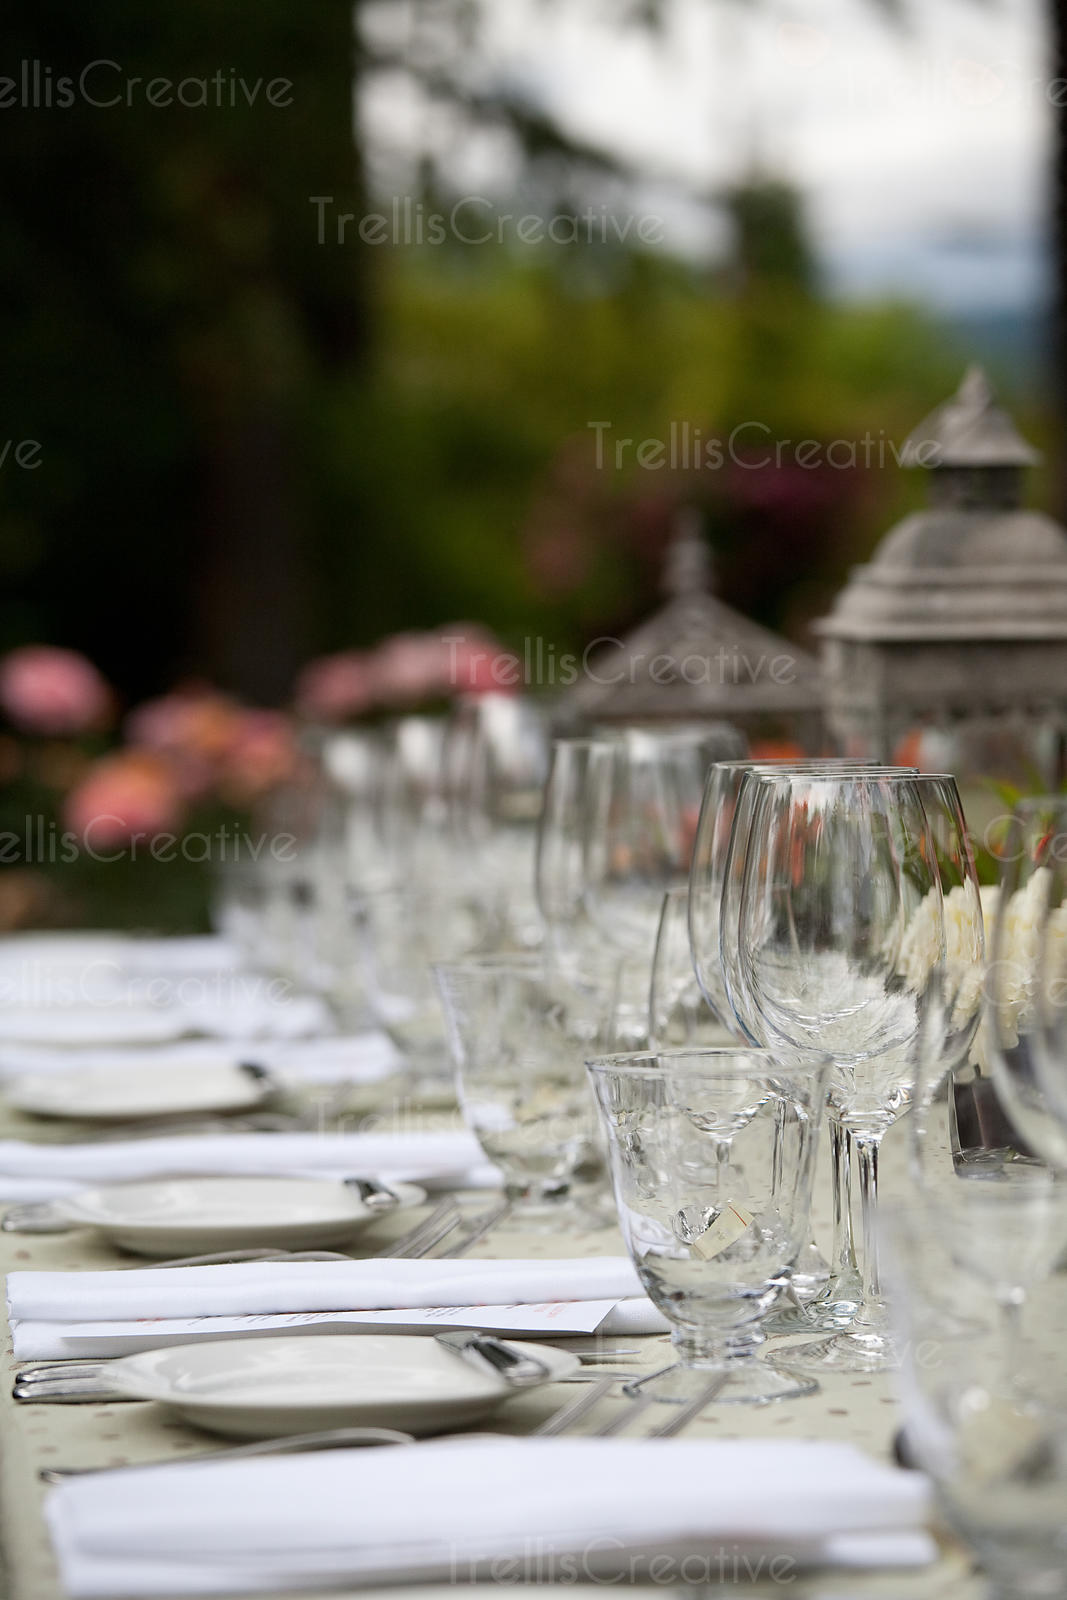 Looking across an elegantly decorated table at an outdoor wedding reception